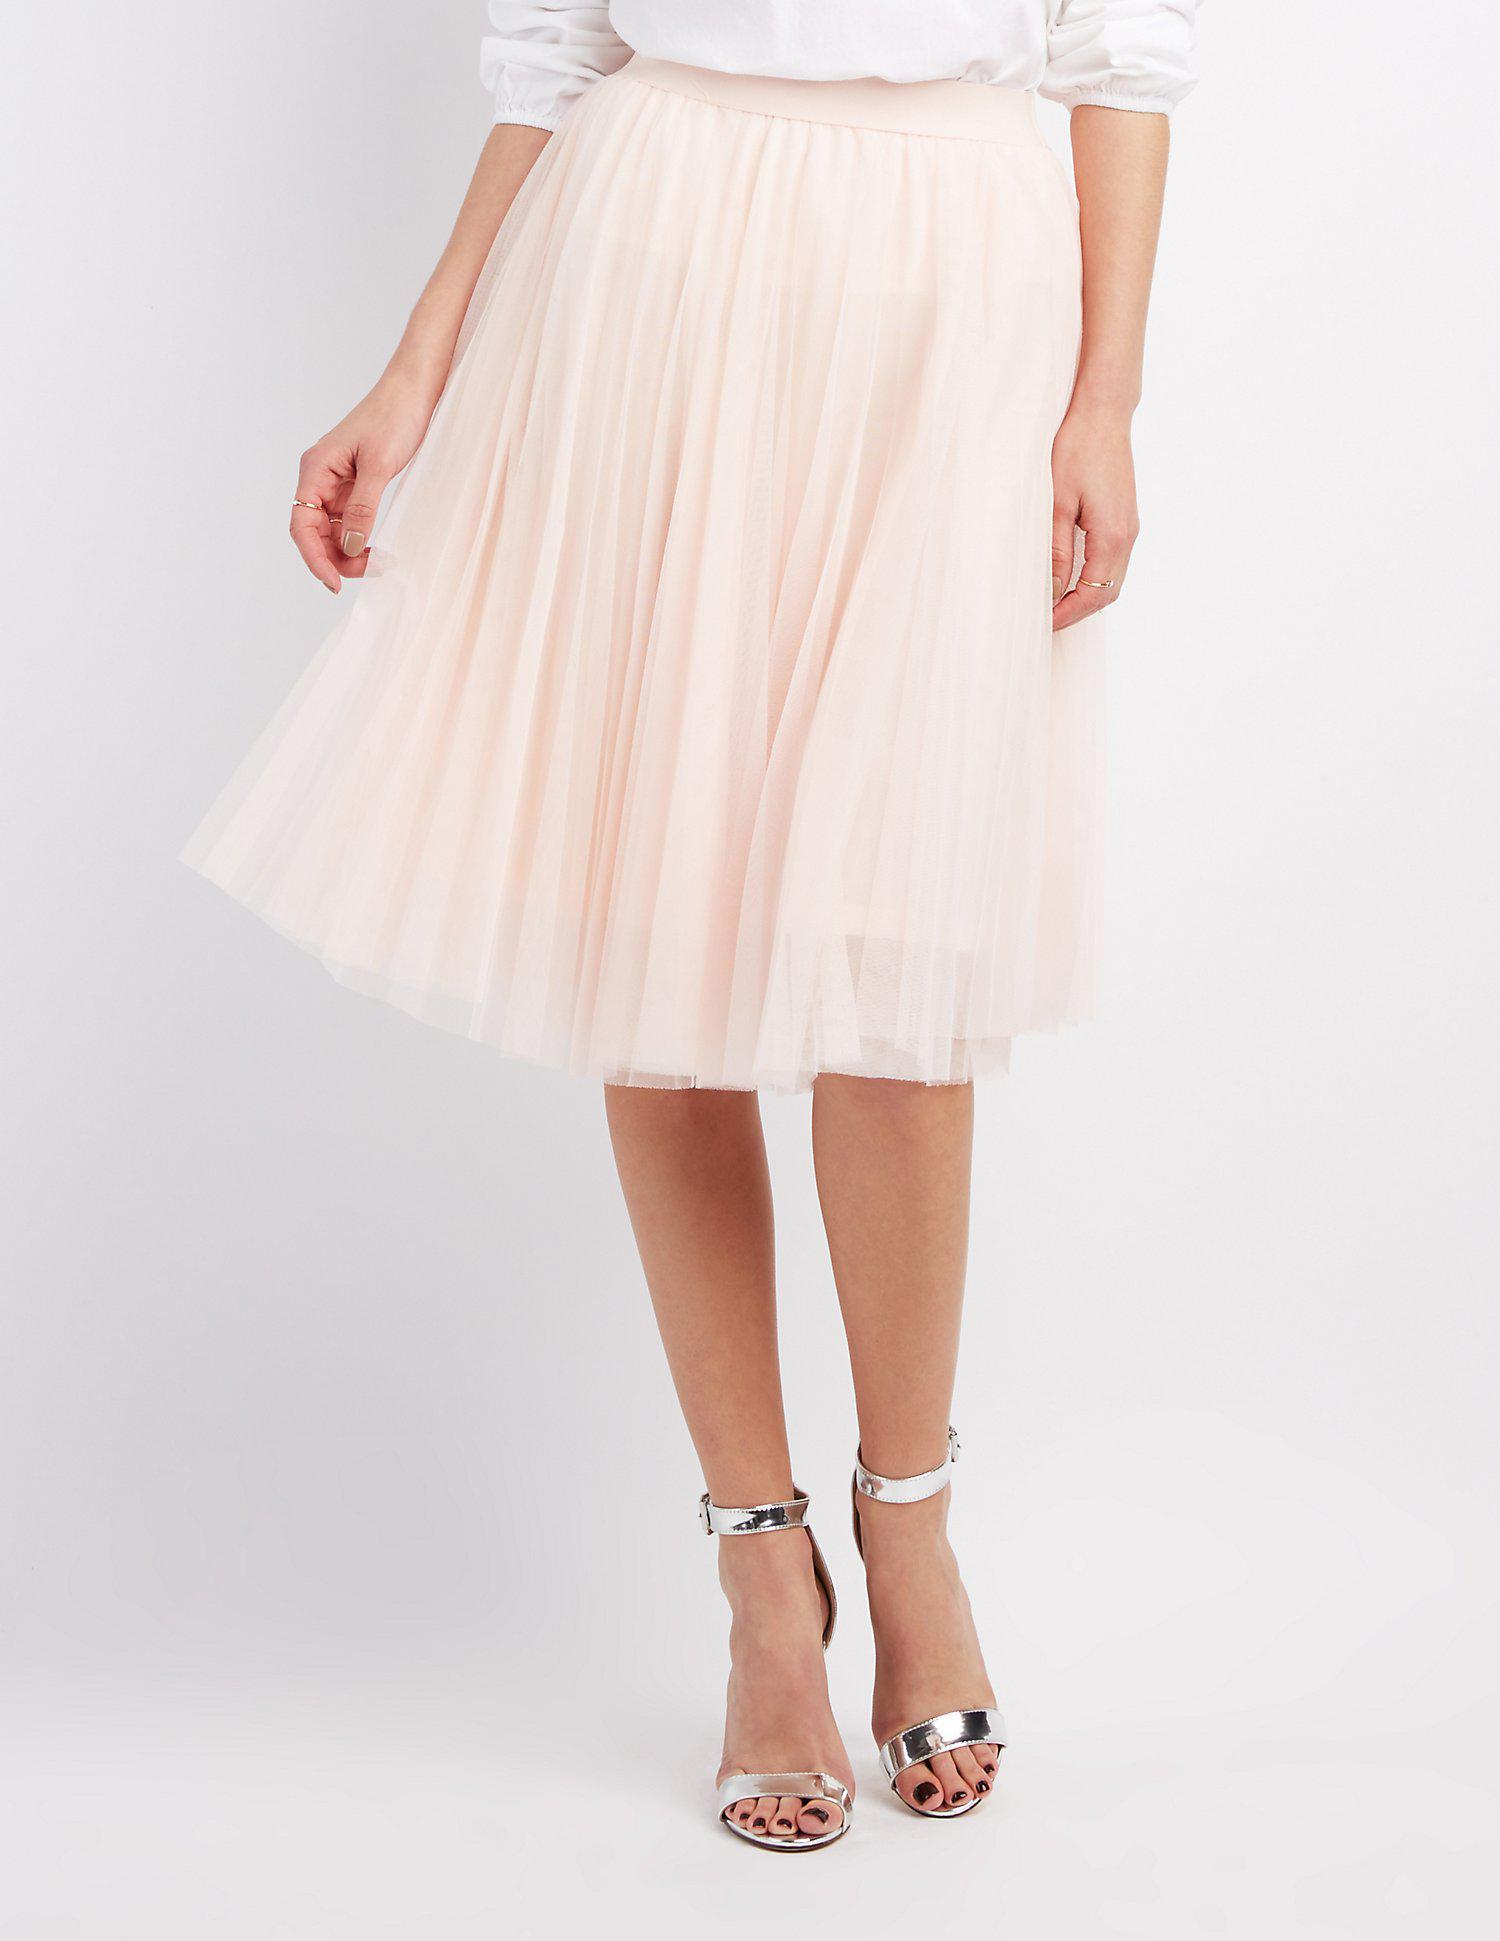 7813227bce Gallery. Previously sold at: Charlotte Russe · Women's Tulle Skirts